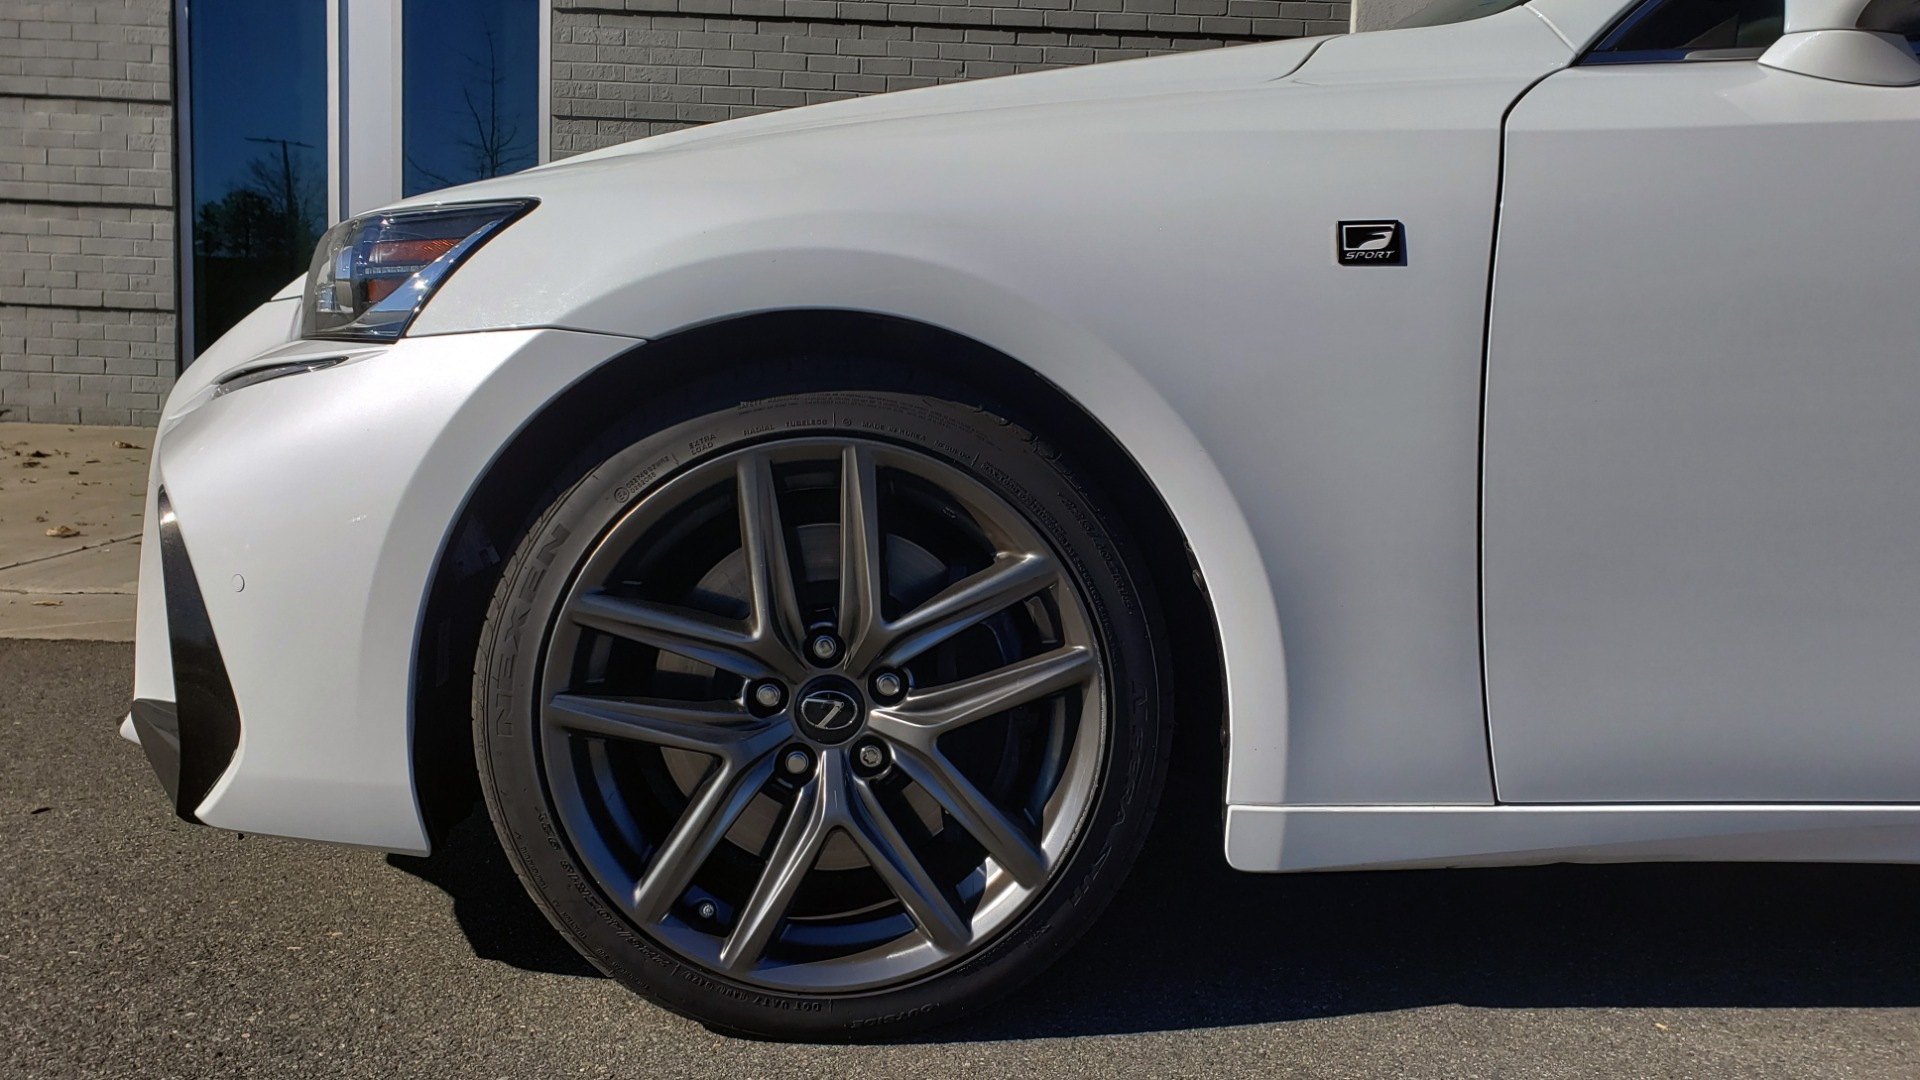 Used 2018 Lexus IS 300 F-SPORT / BSM / SUNROOF / REARVIEW / 18IN WHEELS for sale Sold at Formula Imports in Charlotte NC 28227 72